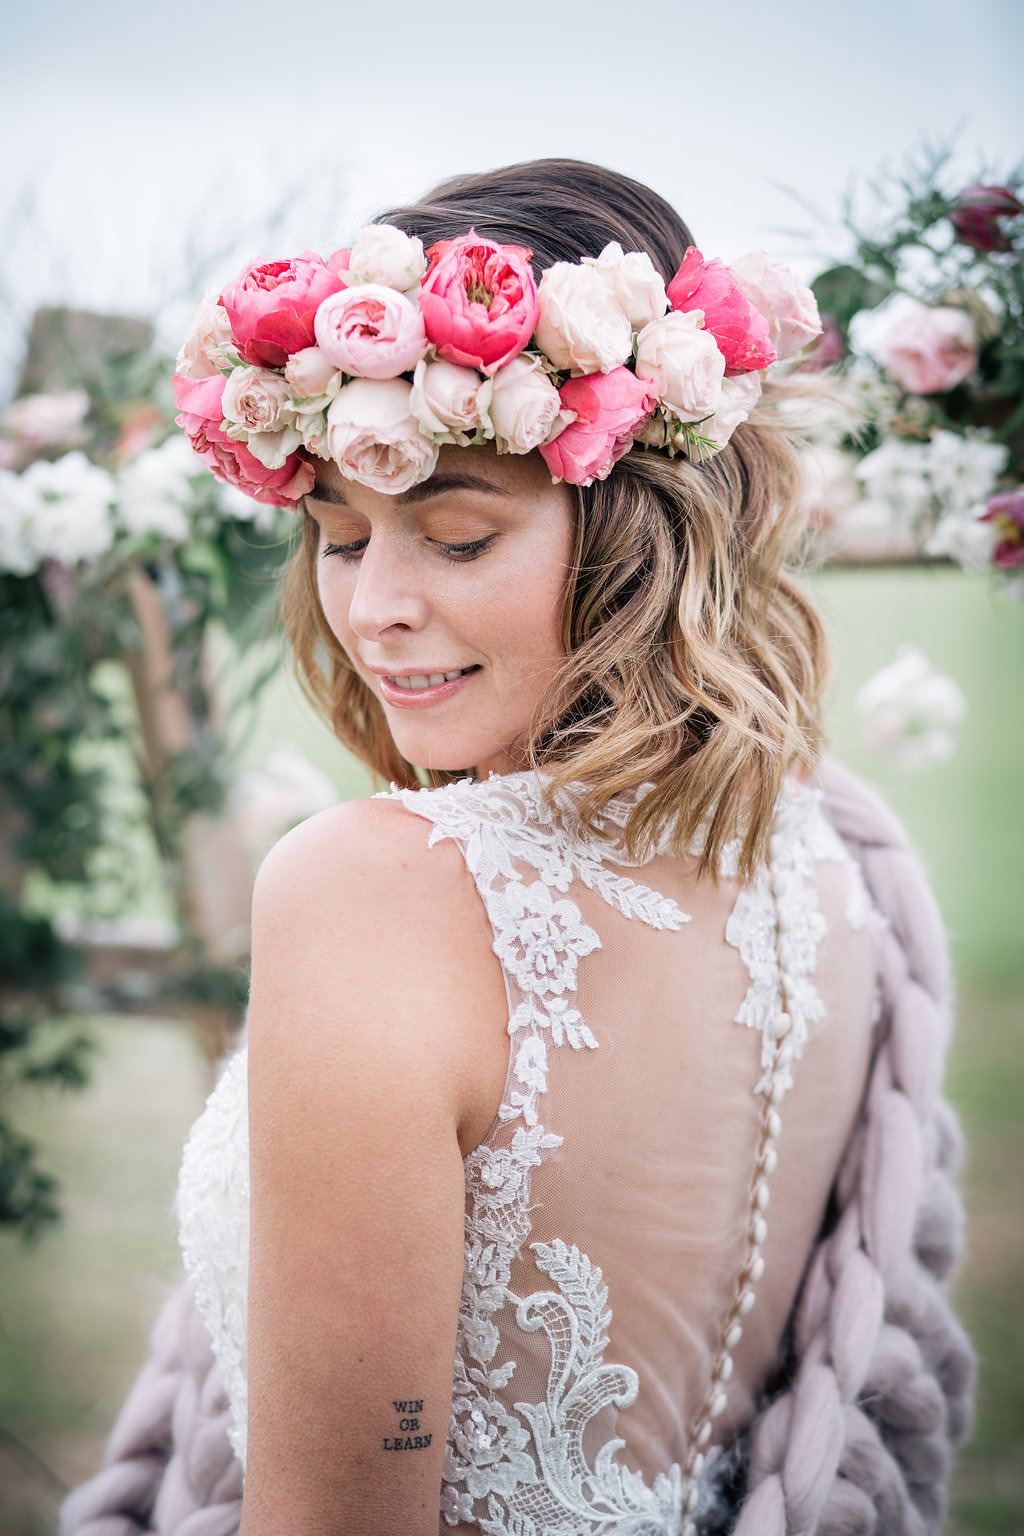 Bride Bridal Hair Style Short Bob Flower Crown Lapstone Barn Wedding Ideas Cotswolds Katie Hamilton Photography